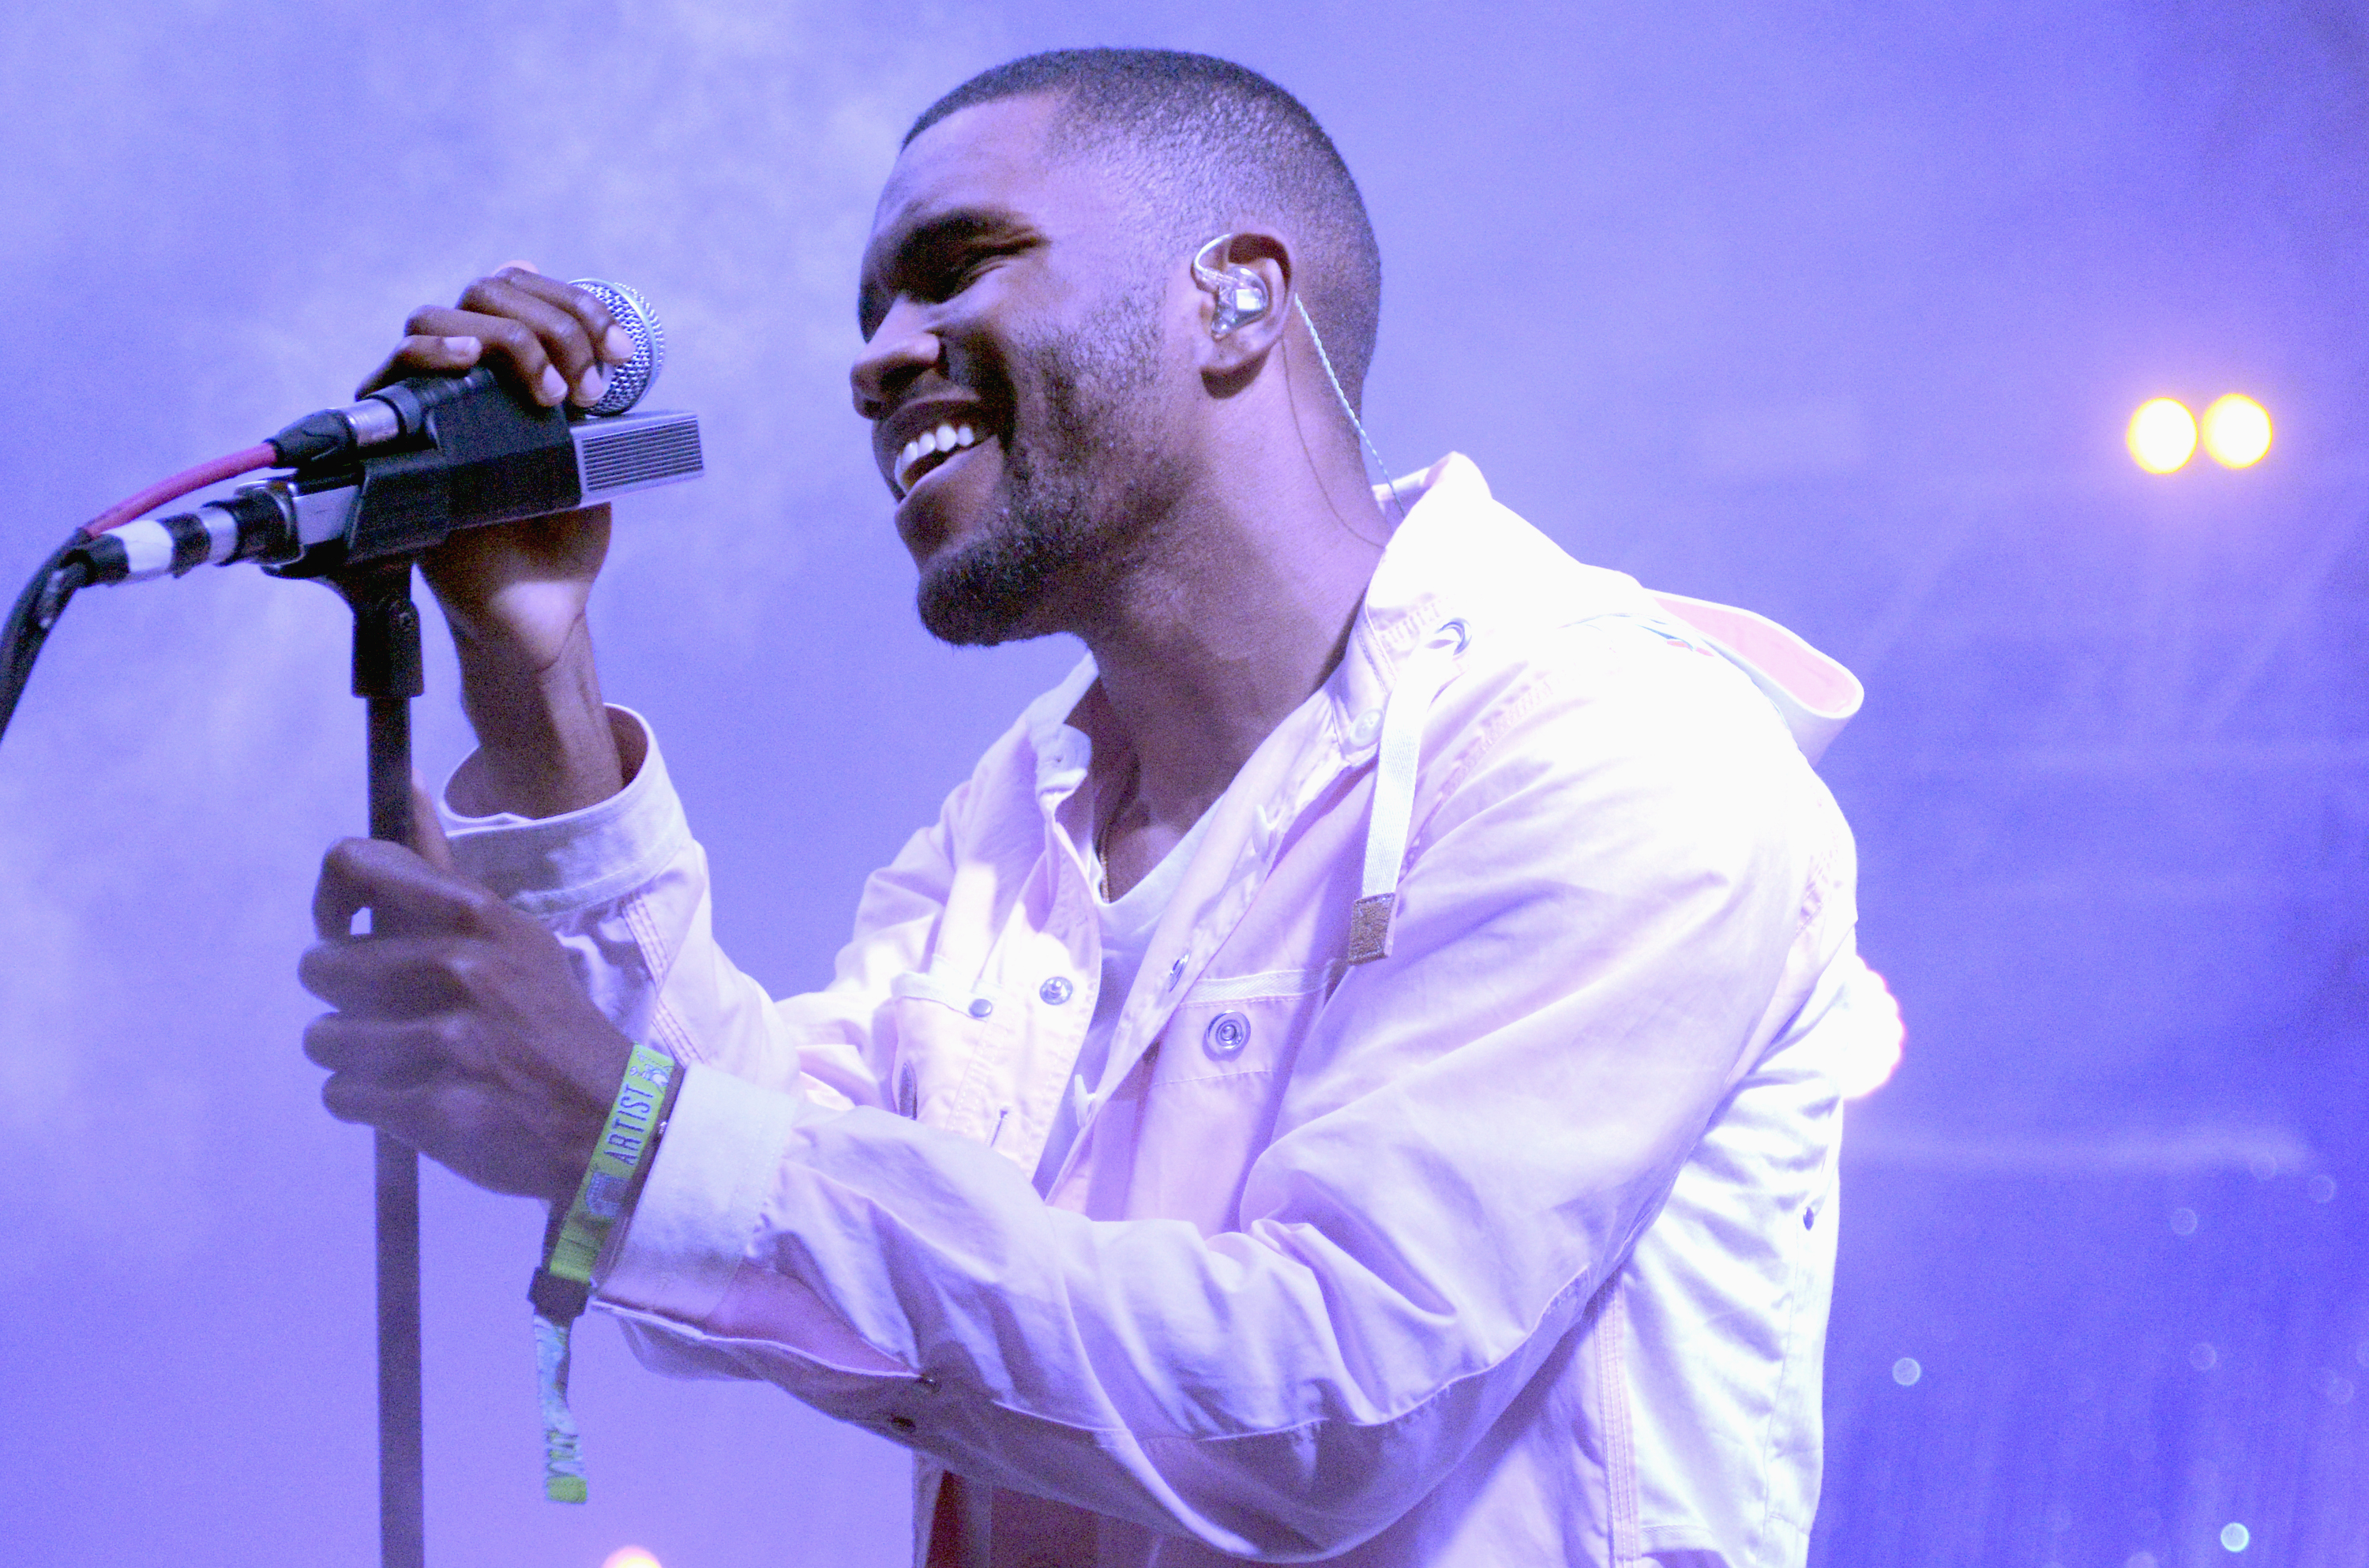 Frank Ocean during the performs during the 2014 Bonnaroo Music & Arts Festival in Manchester, Tennessee, on June 14, 2014.